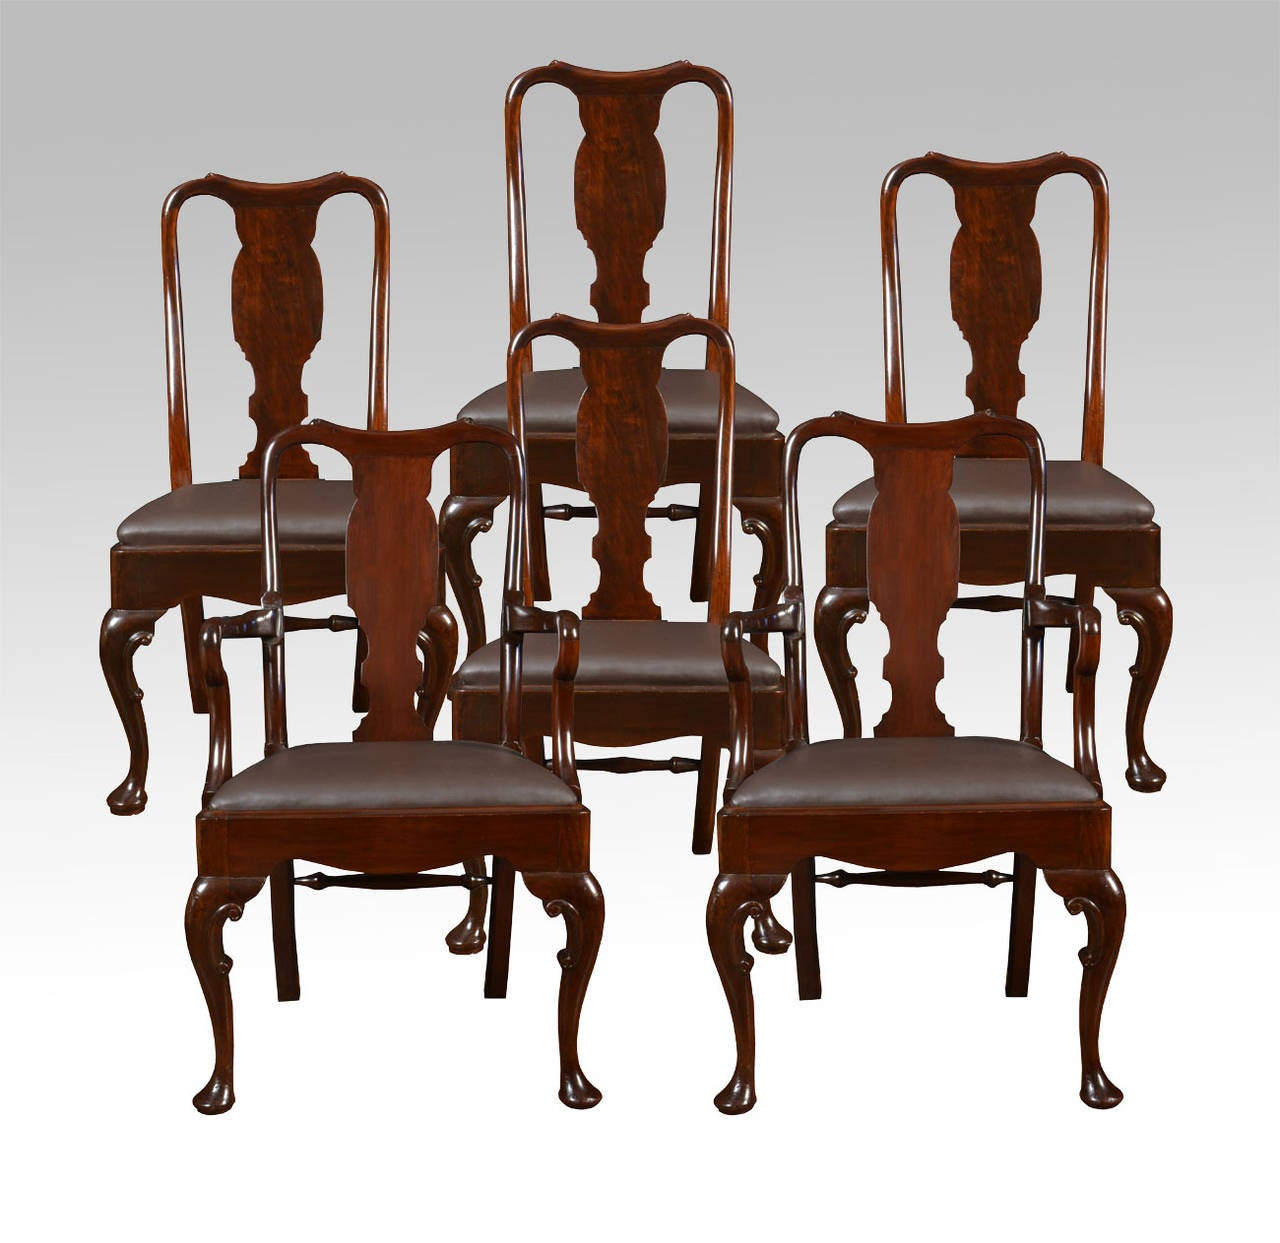 Set of six early 20th century queen anne style high back dining chairs for sale at 1stdibs - Queen anne dining room furniture ...